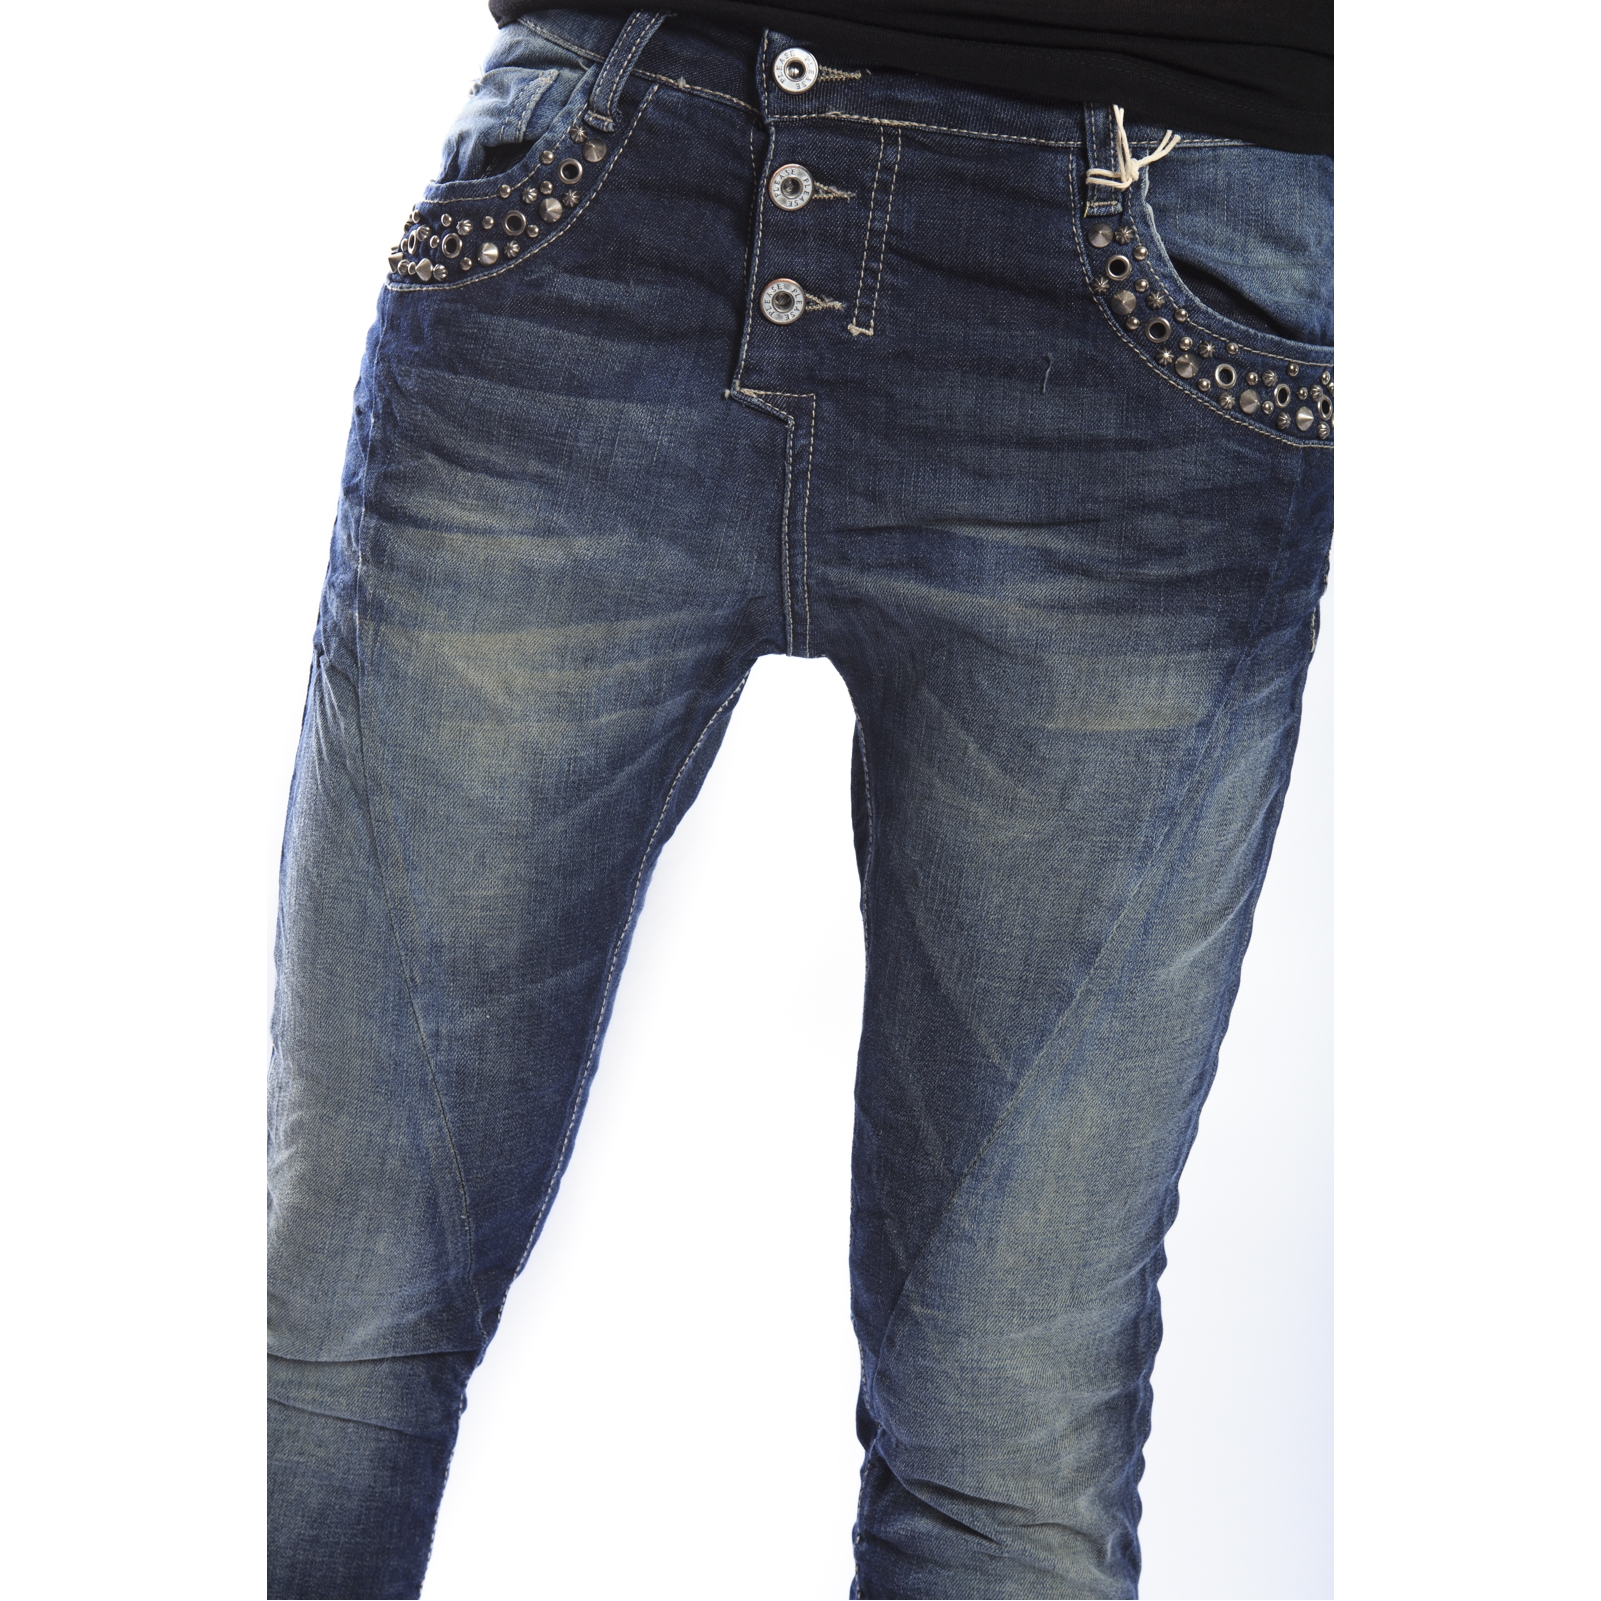 Studded jeans go wonderfully well with leather, so try black or brown boots, too. There are many styles of women's jeans with gorgeous studded patterns. Capris with studs and designs on the pockets are fun, especially during a night of excitement and adventure.